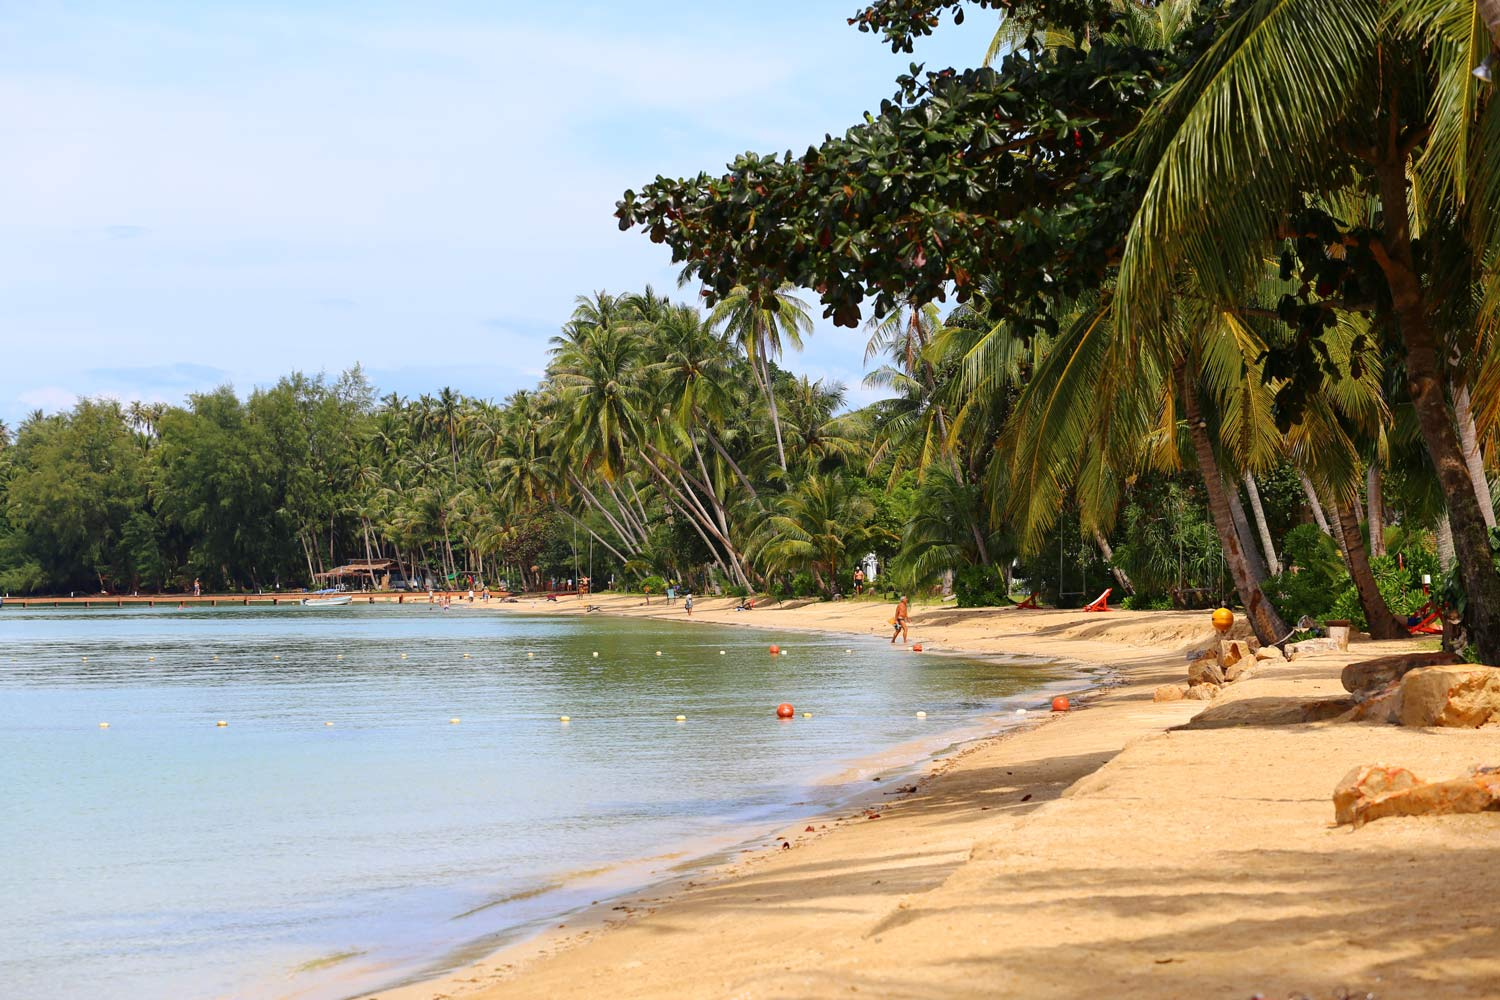 Koh Mak Beach - Administration and Economy